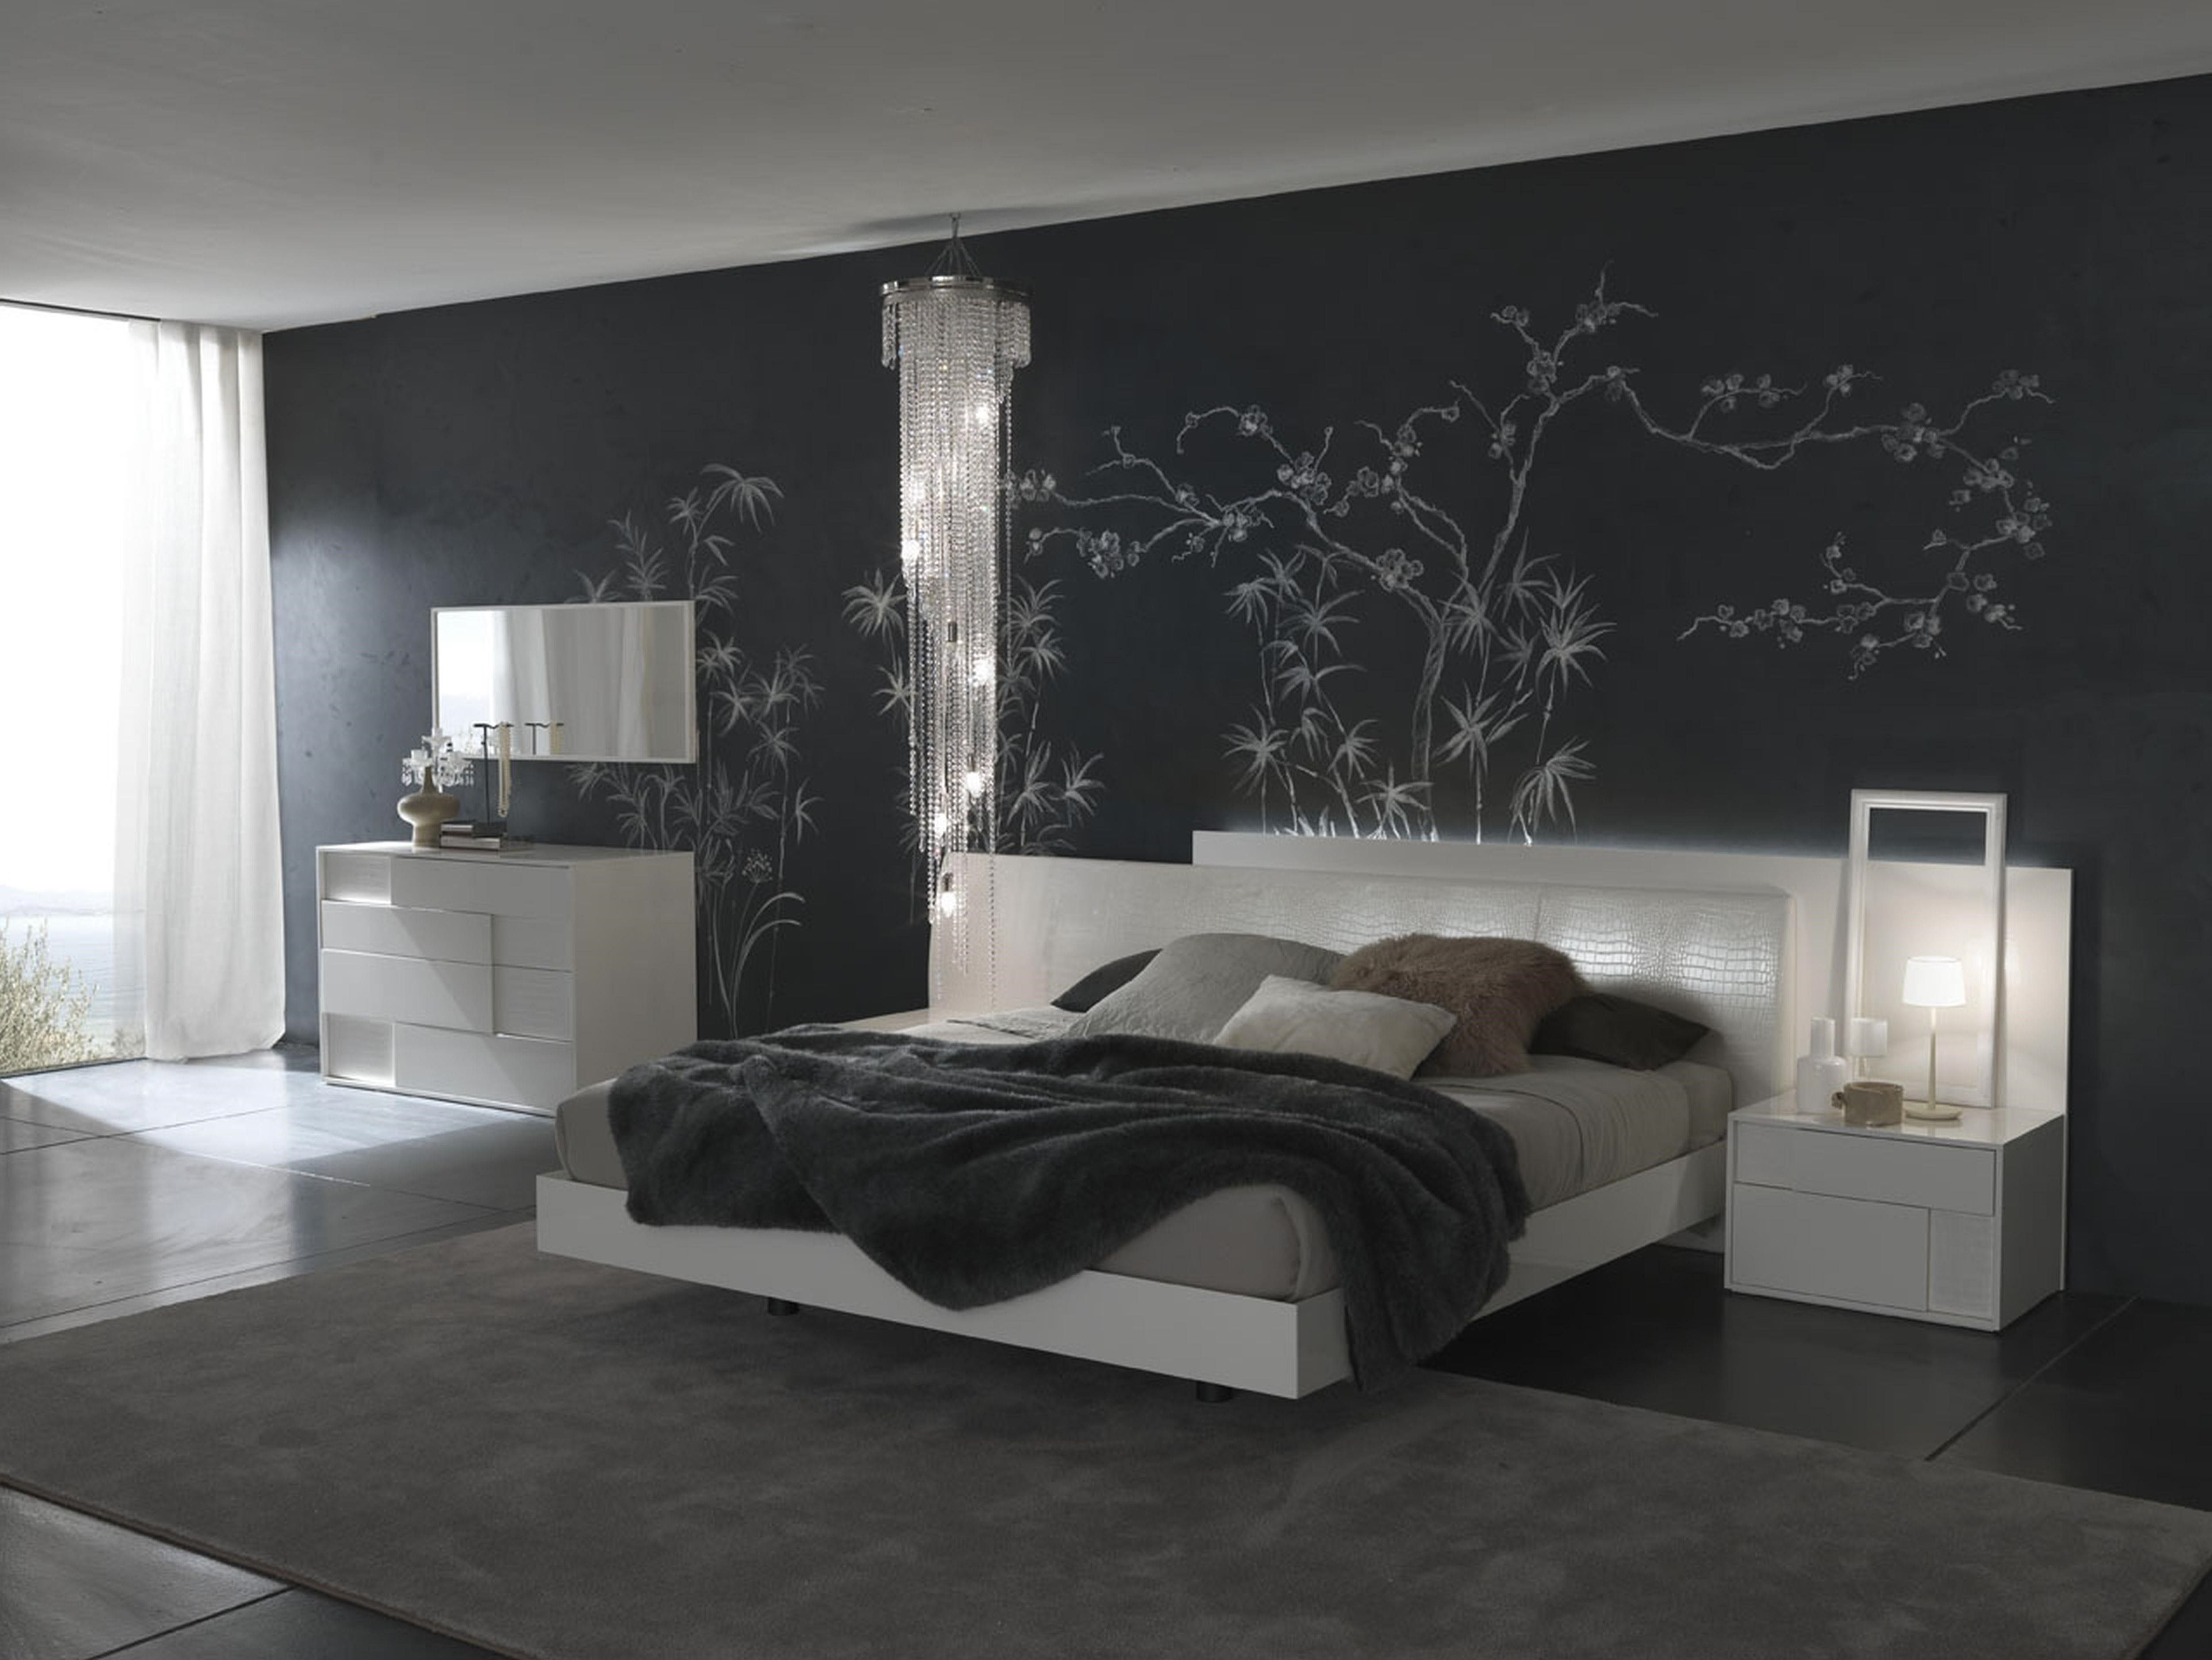 Art Ideas For Bedroom Young Adult Male — Randolph Indoor and ...